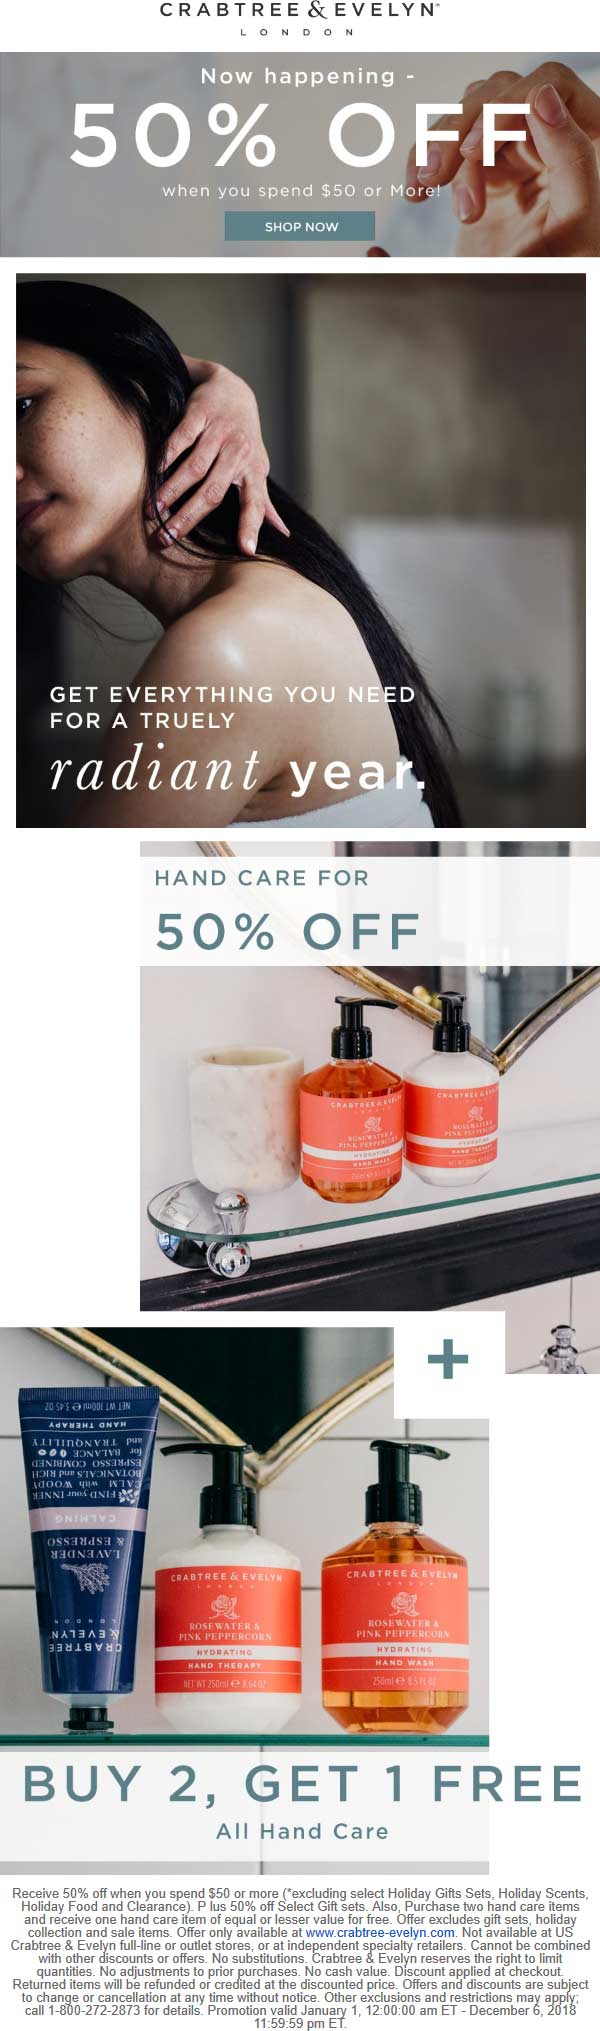 Crabtree & Evelyn coupons & promo code for [April 2020]